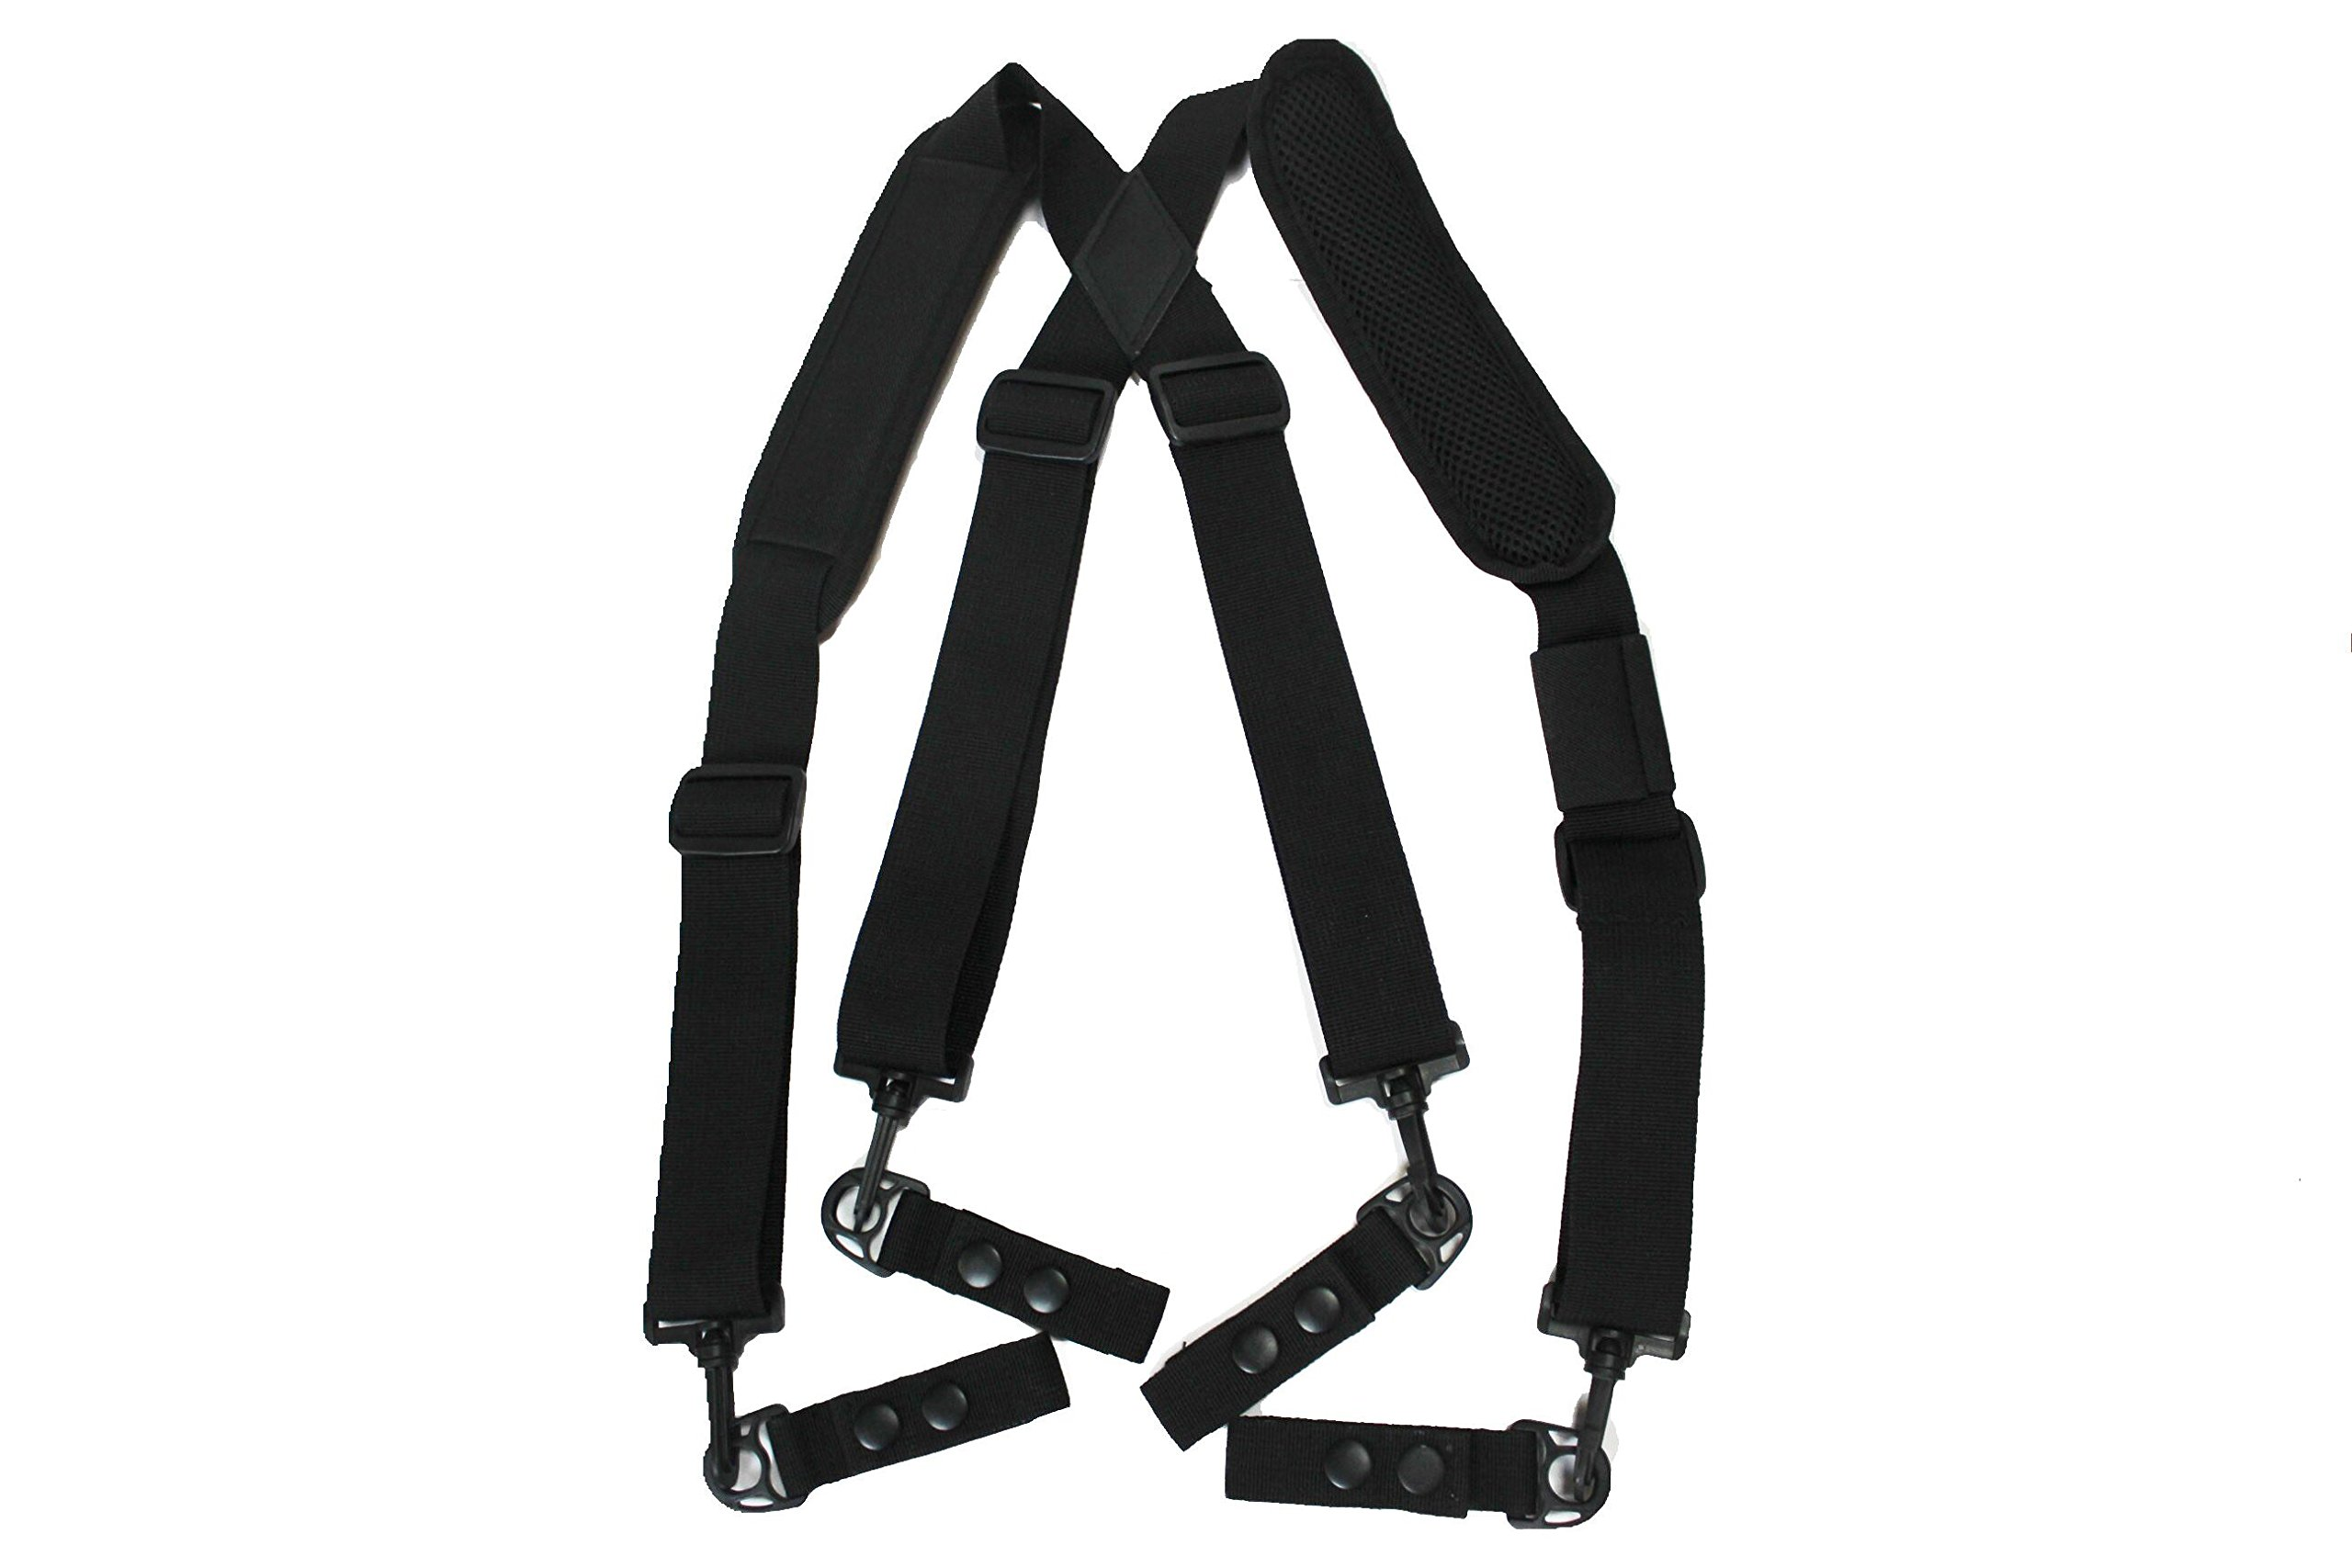 MeloTough suspenders,Duty Belt Suspenders with Padded Adjustable tool belt Suspenders